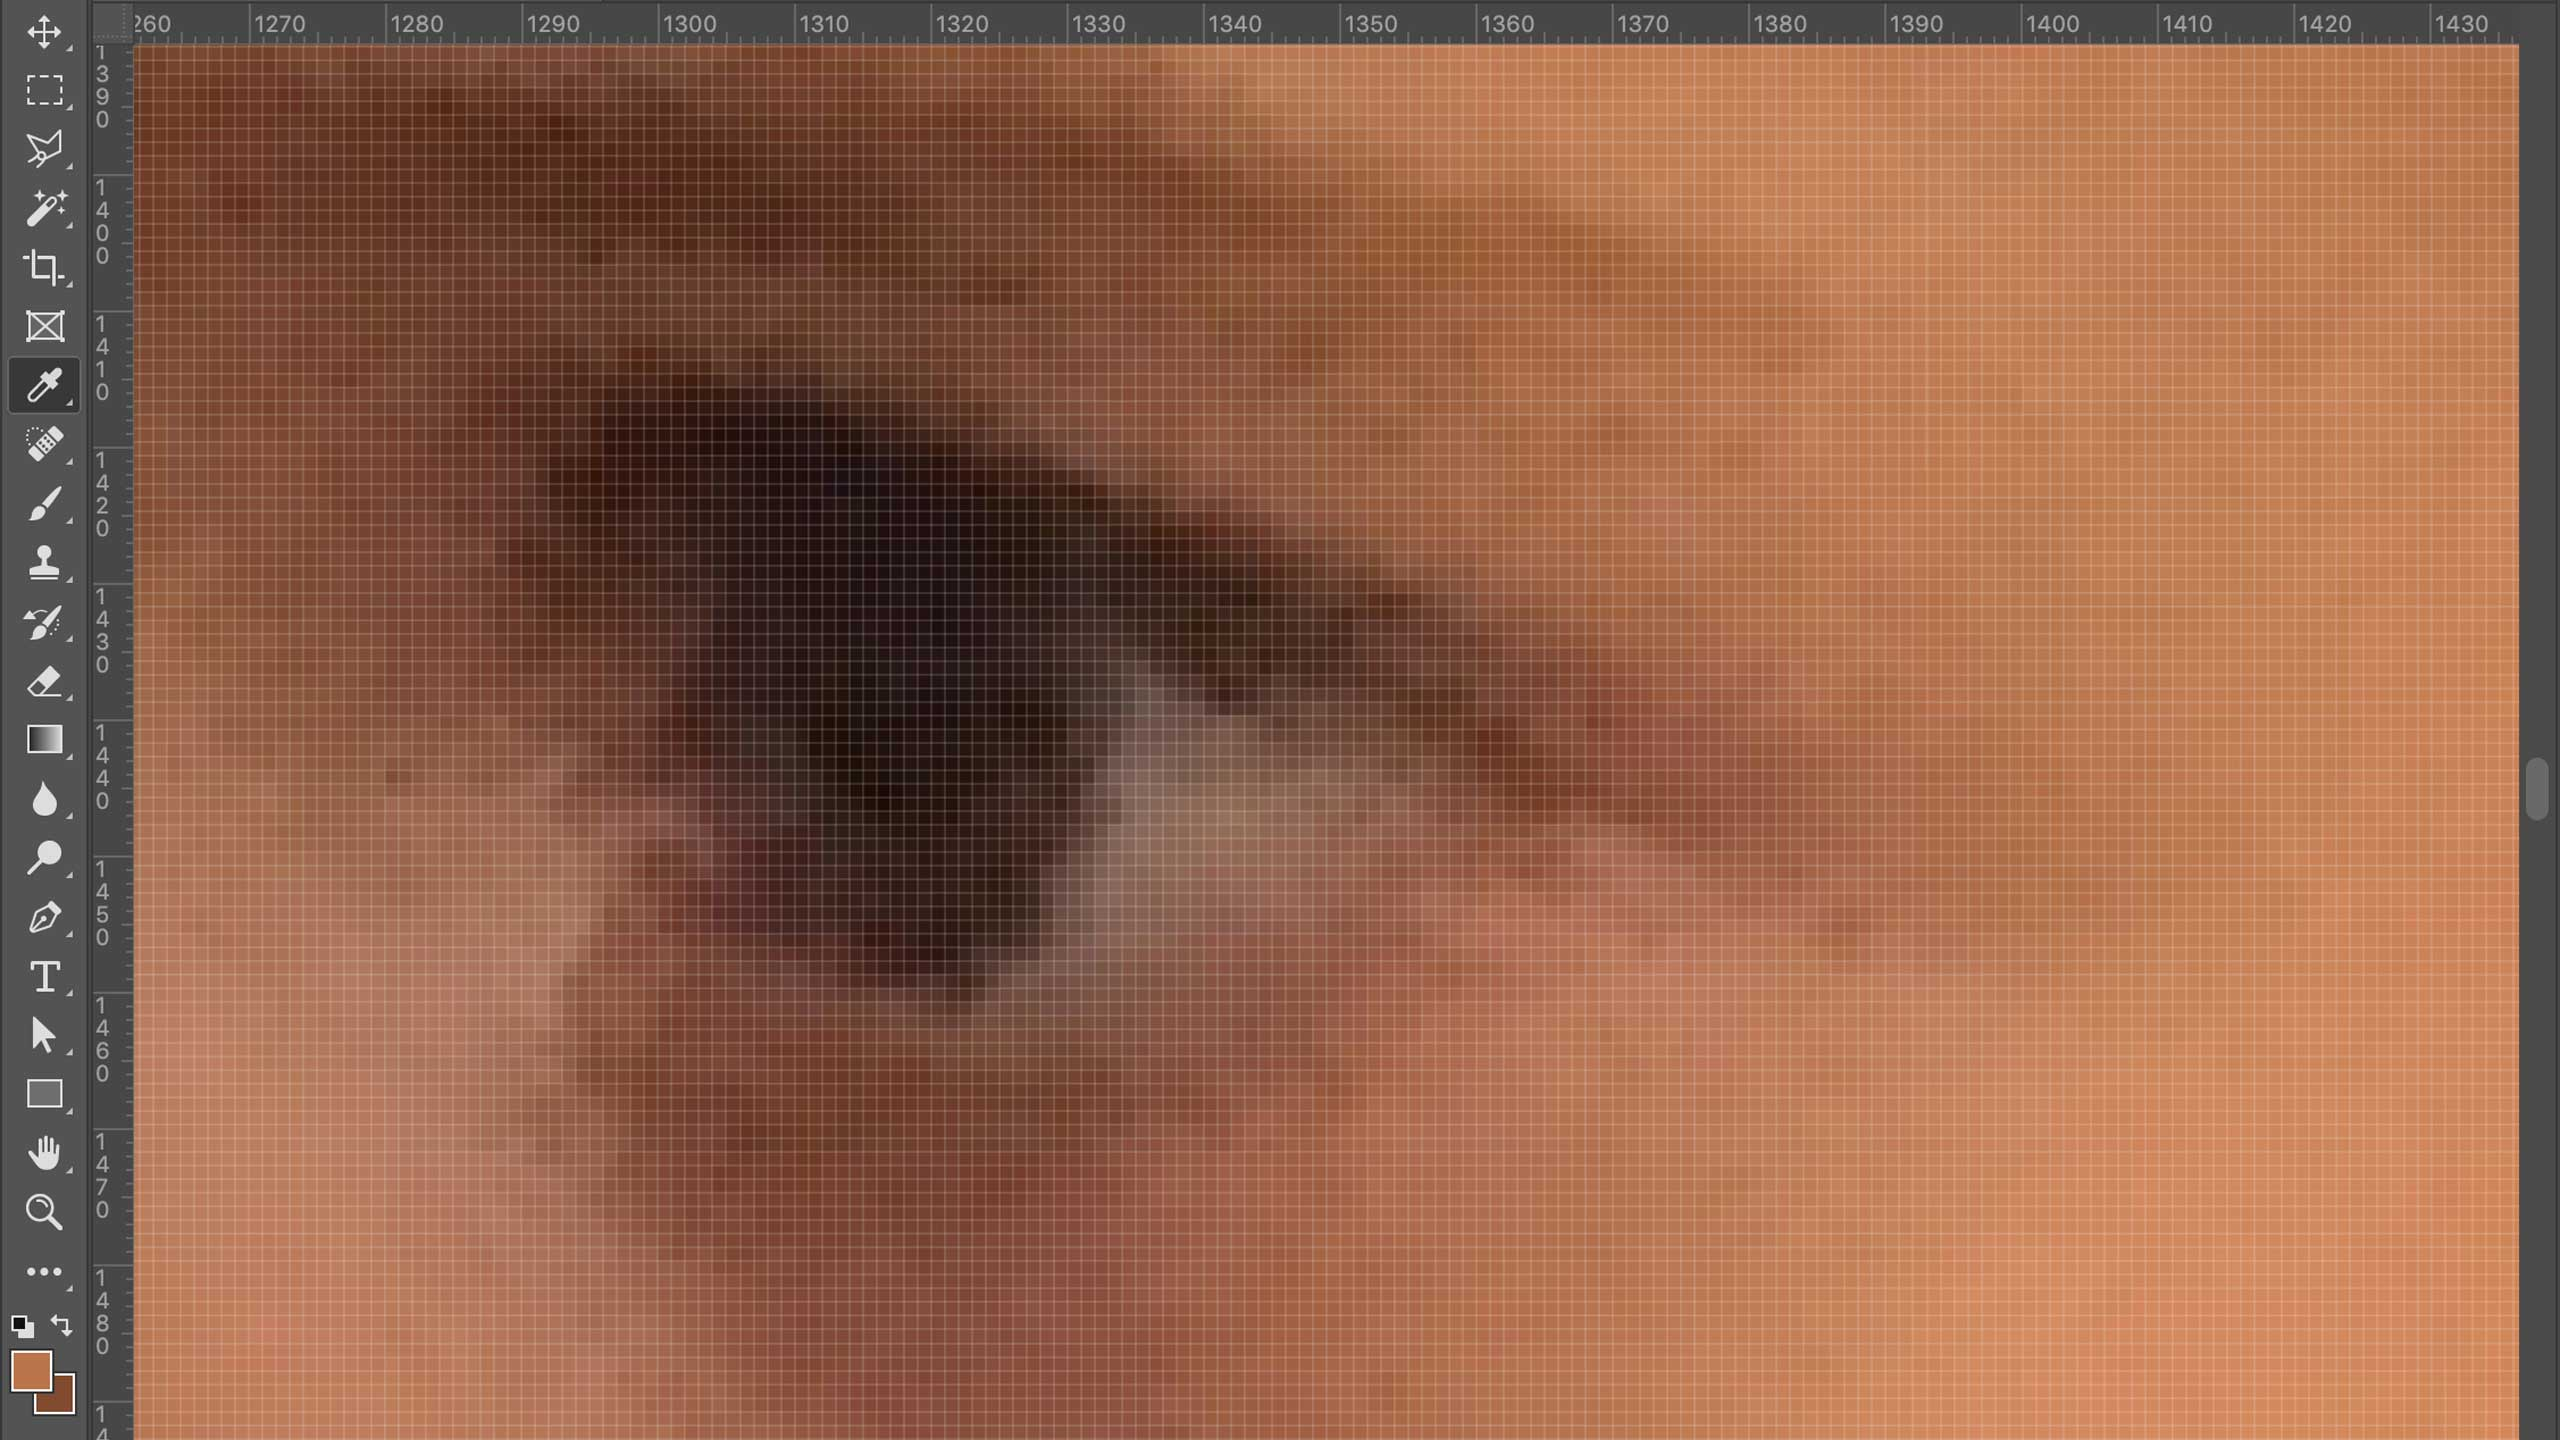 Zooming into the photograph, showing a closeup of a child's eye with visible pixelation